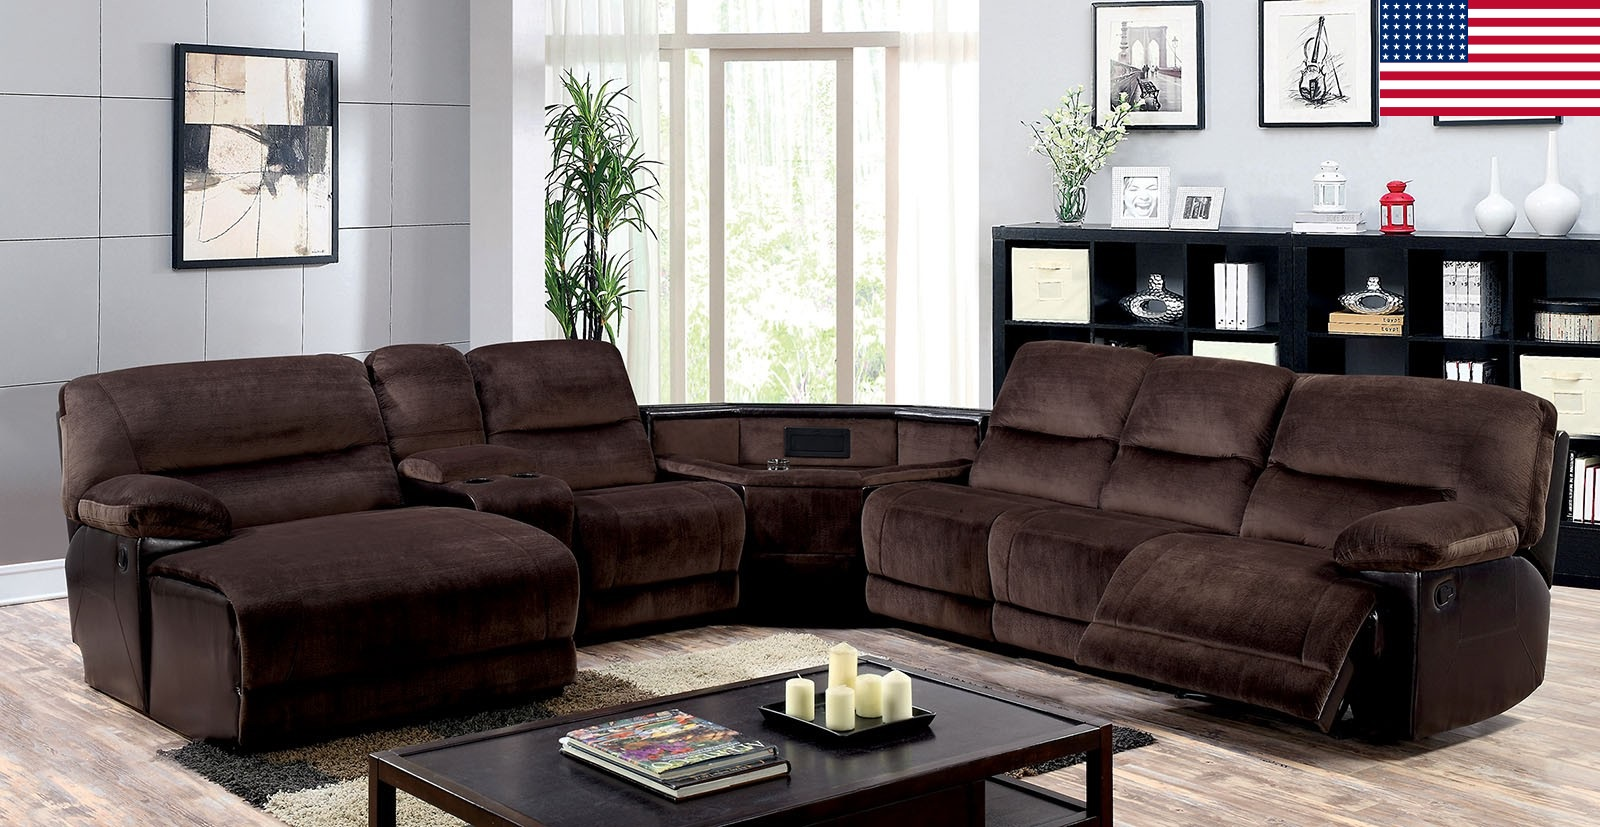 sectional recliner console wedge push back chaise brown microfiber made in usa